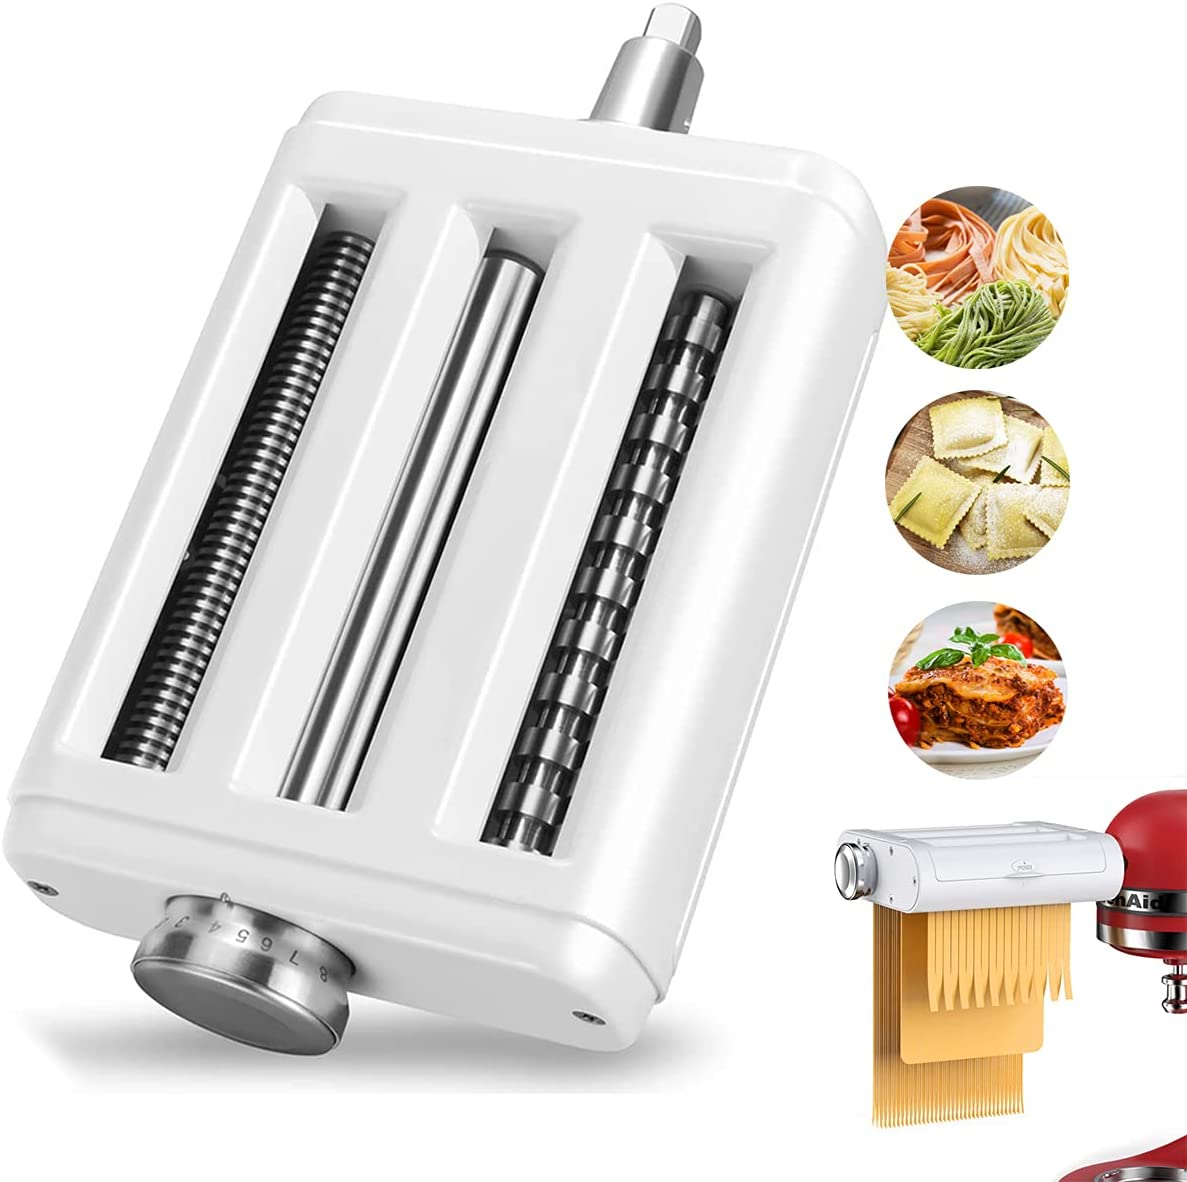 lowest price Pasta Maker Attachment for All Noodle Mixers KitchenAid 3 Limited time sale